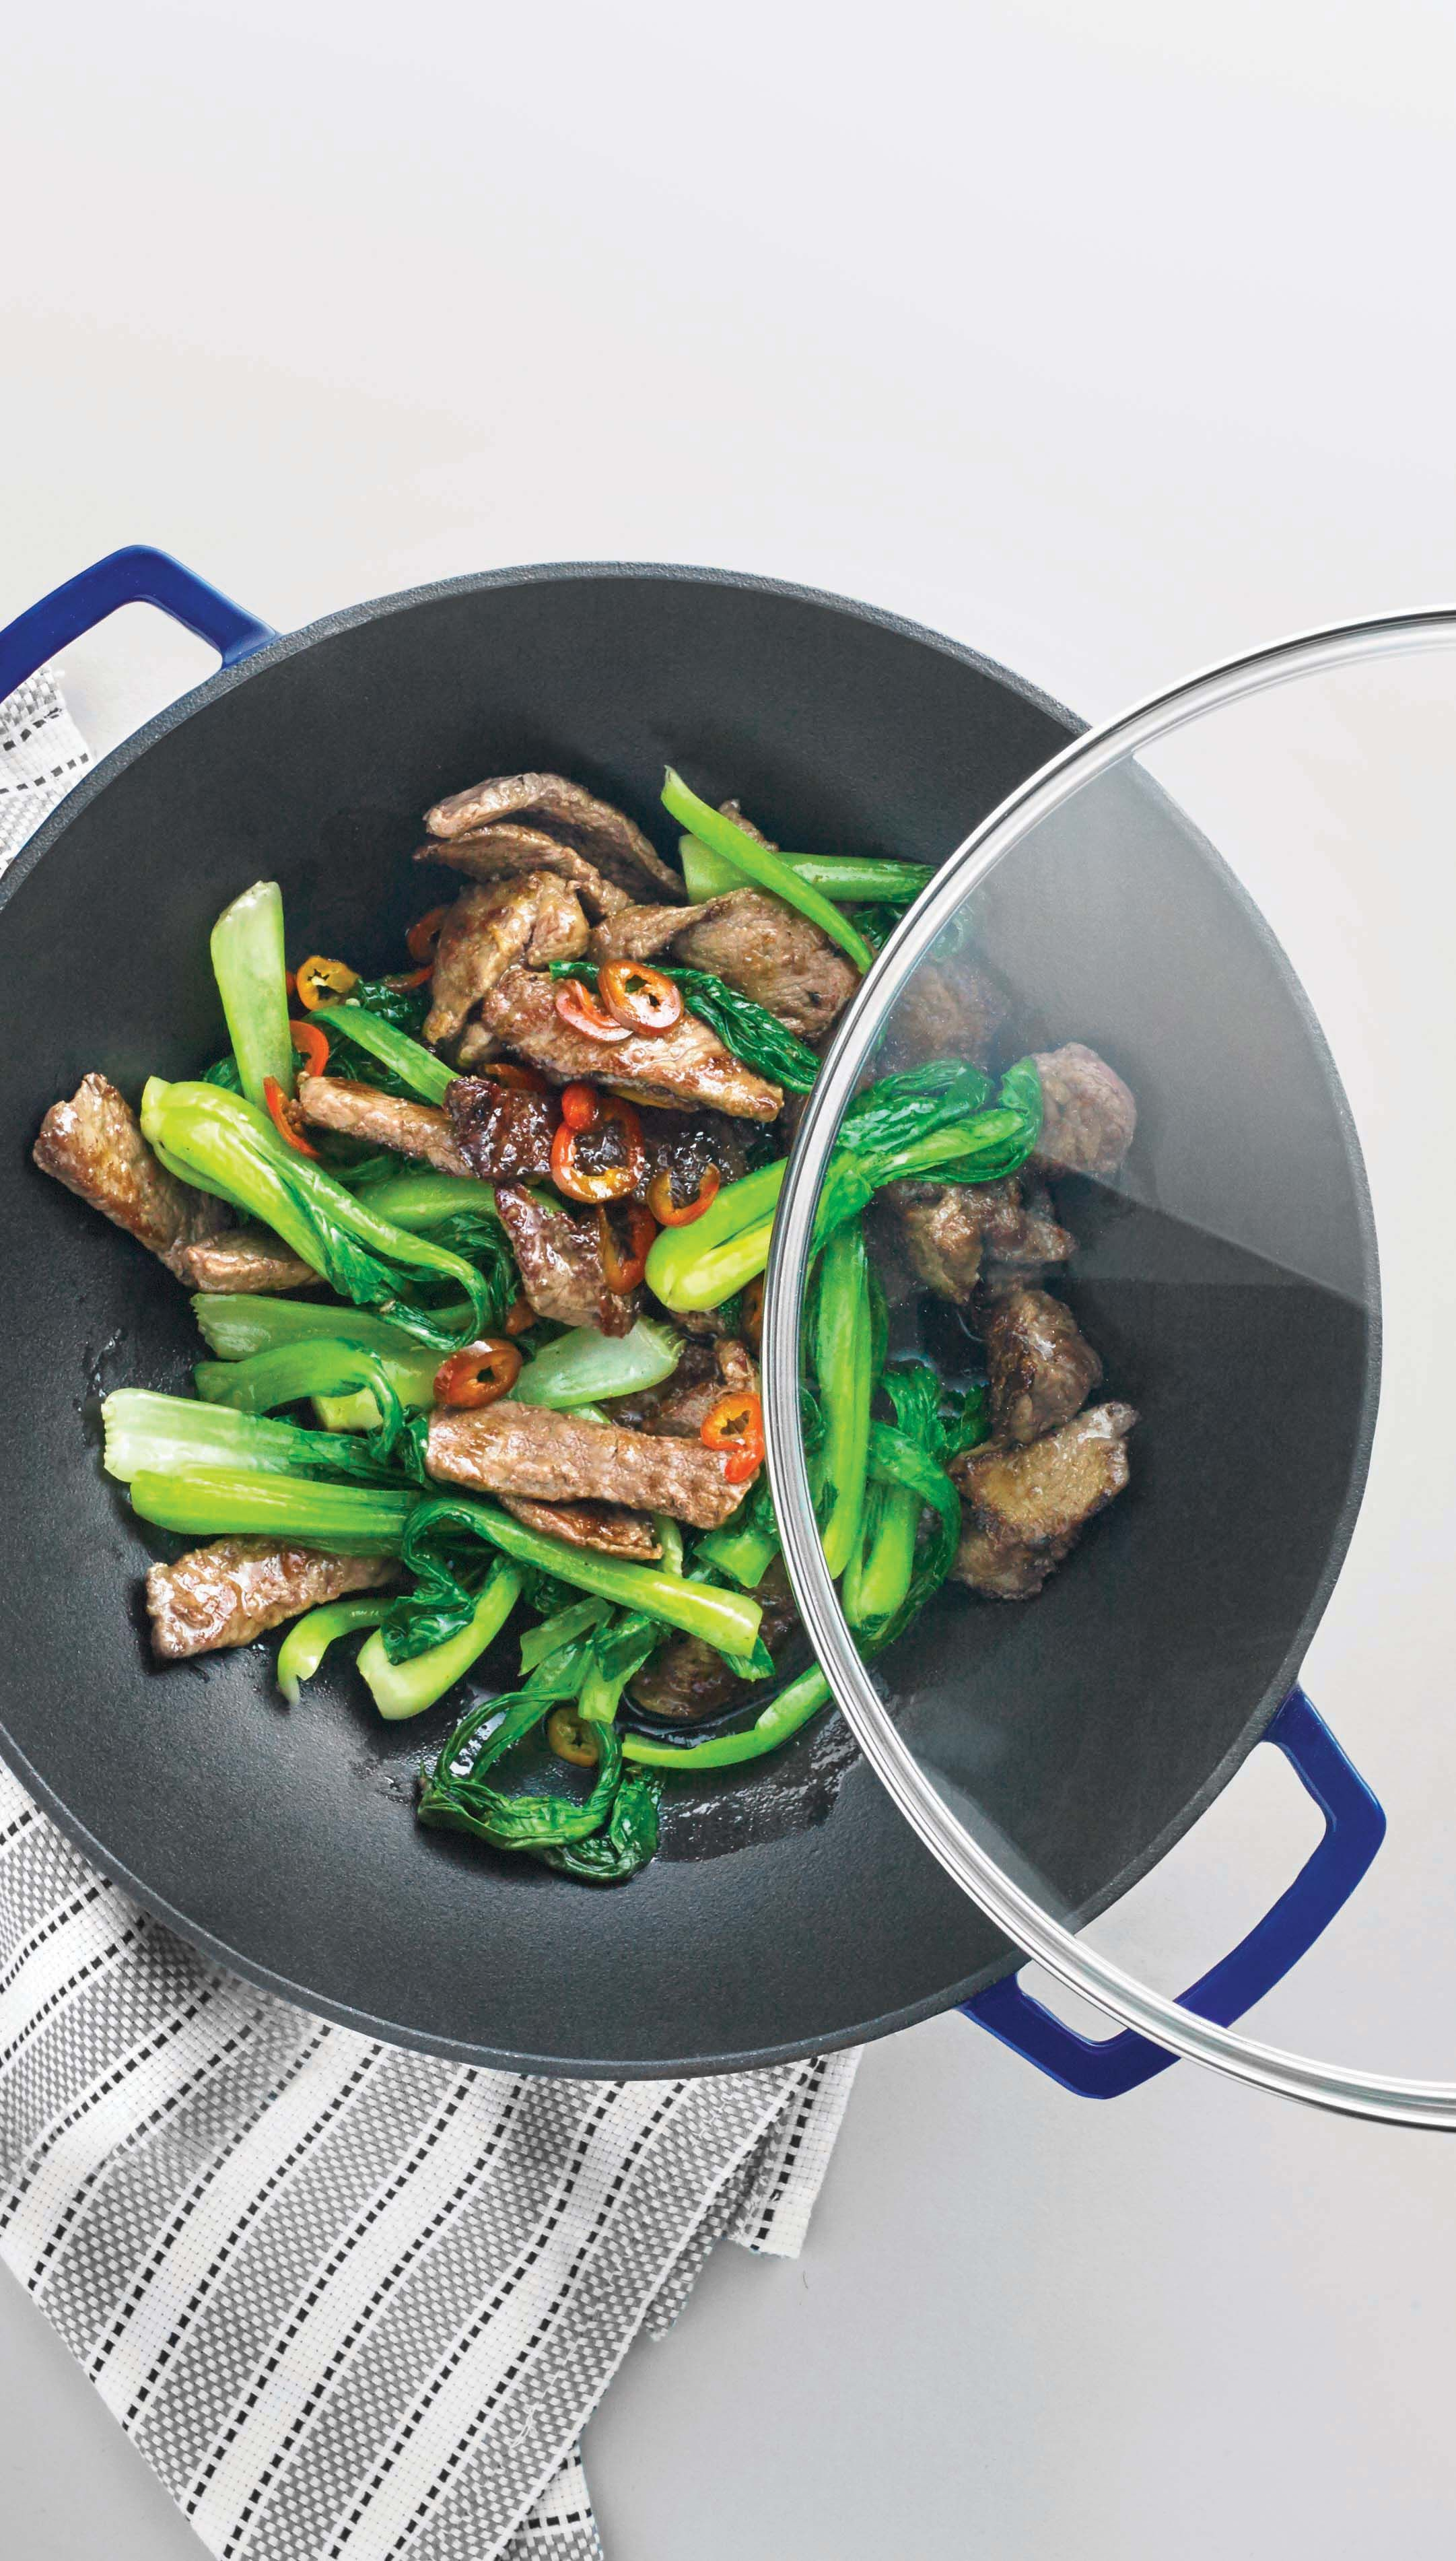 Looking for a healthy and fast weeknight dinner? The round bottom and high sides on Martha's wok are designed to spread heat evenly and cook food quickly, making it perfect for stir-fry! Shop enameled cast iron cookware from the Martha Stewart Collection created for Macy's!